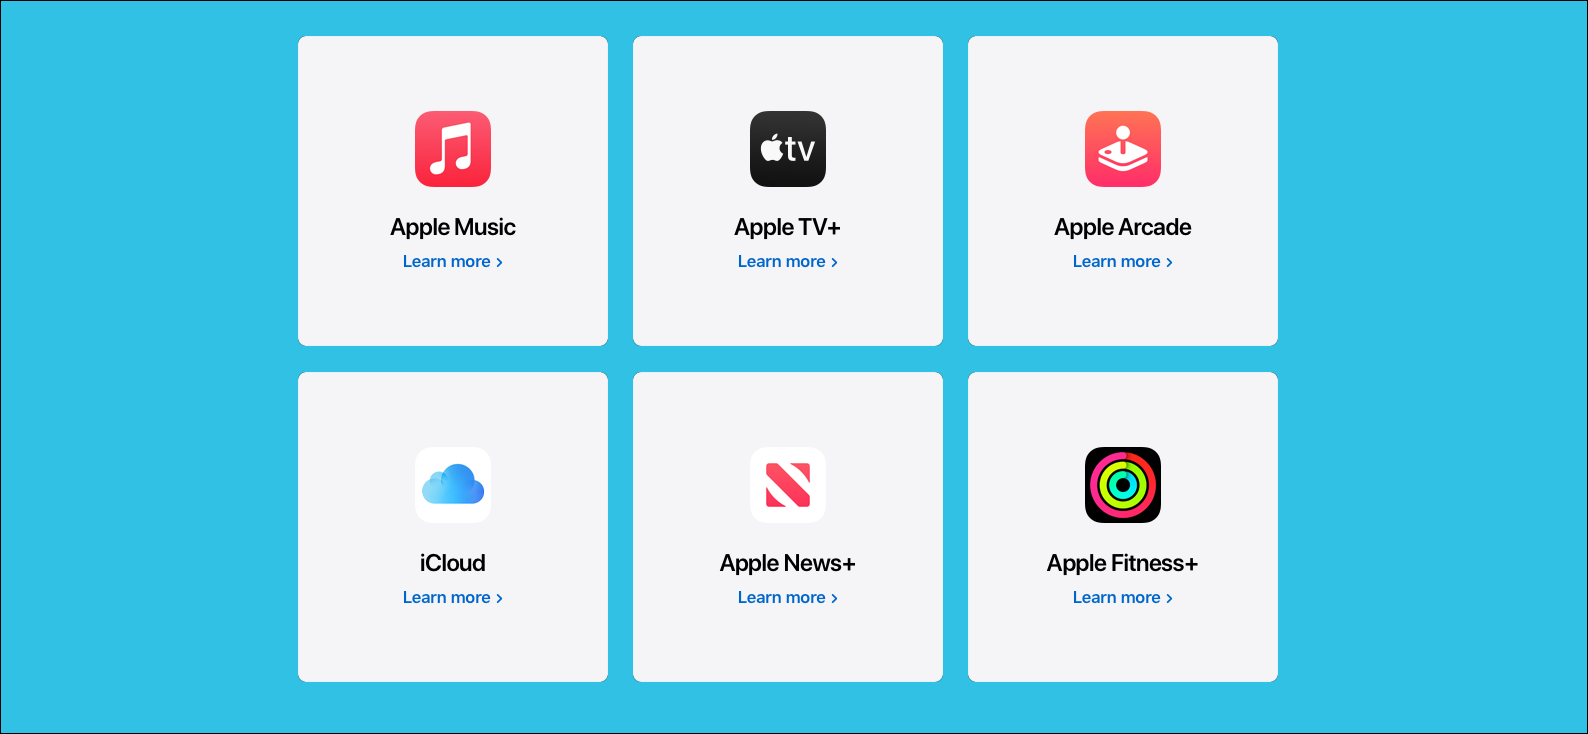 Ein Apple One-Bundle, einschließlich Apple Music, Apple TV +, Apple Arcade, iCloud, Apple News + und Apple Fitness +.